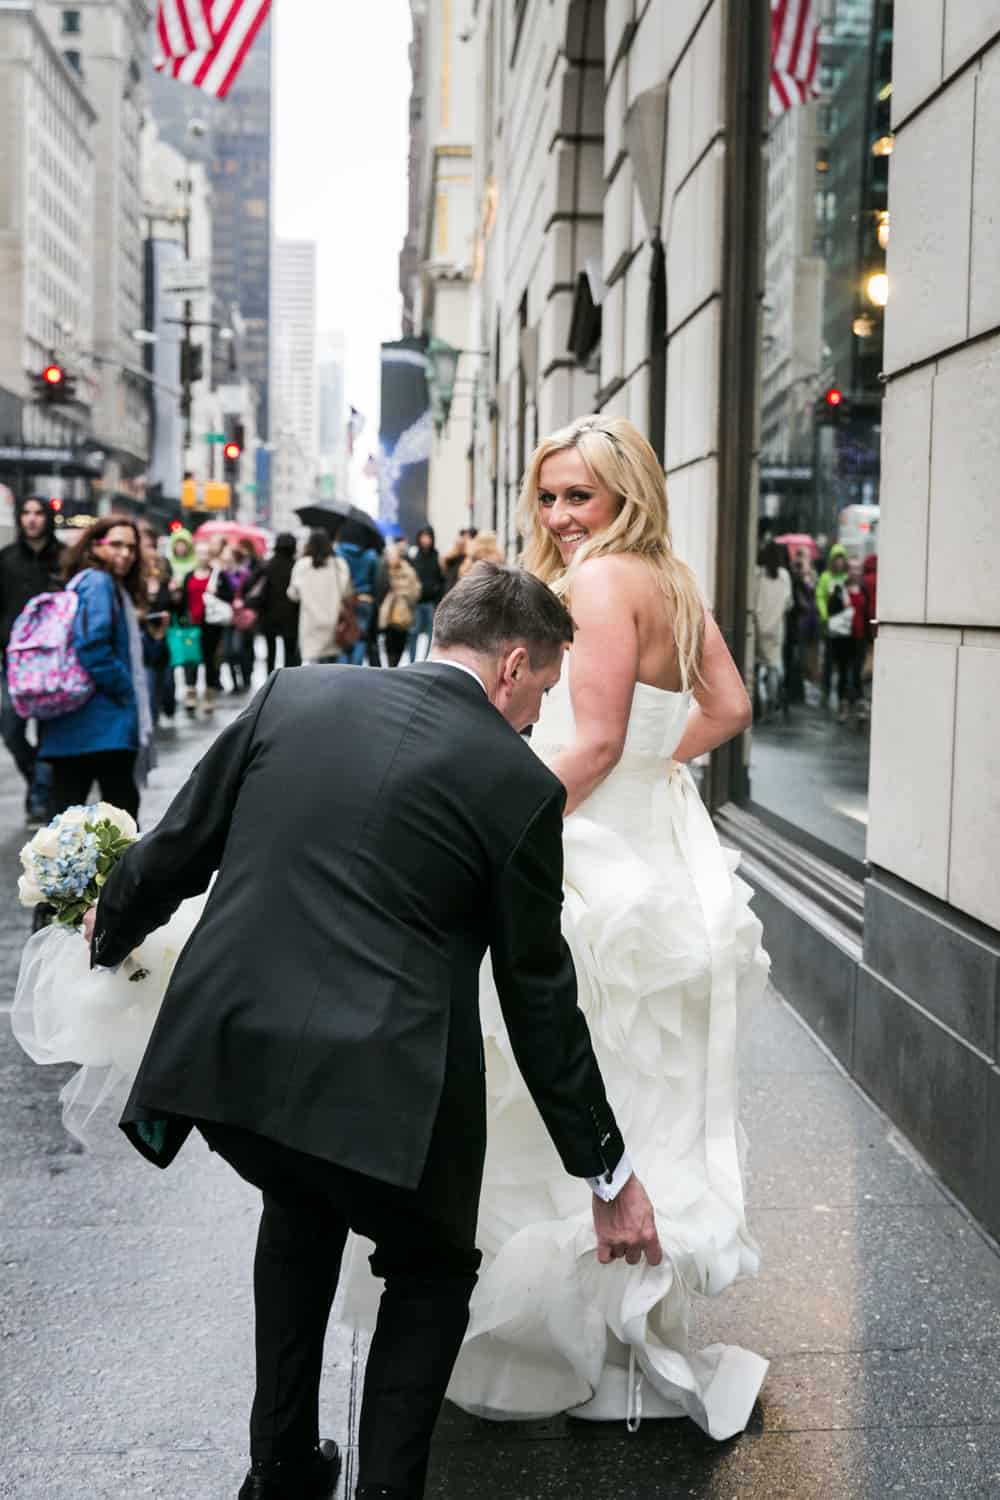 Groom helping bride with dress on NYC sidewalk